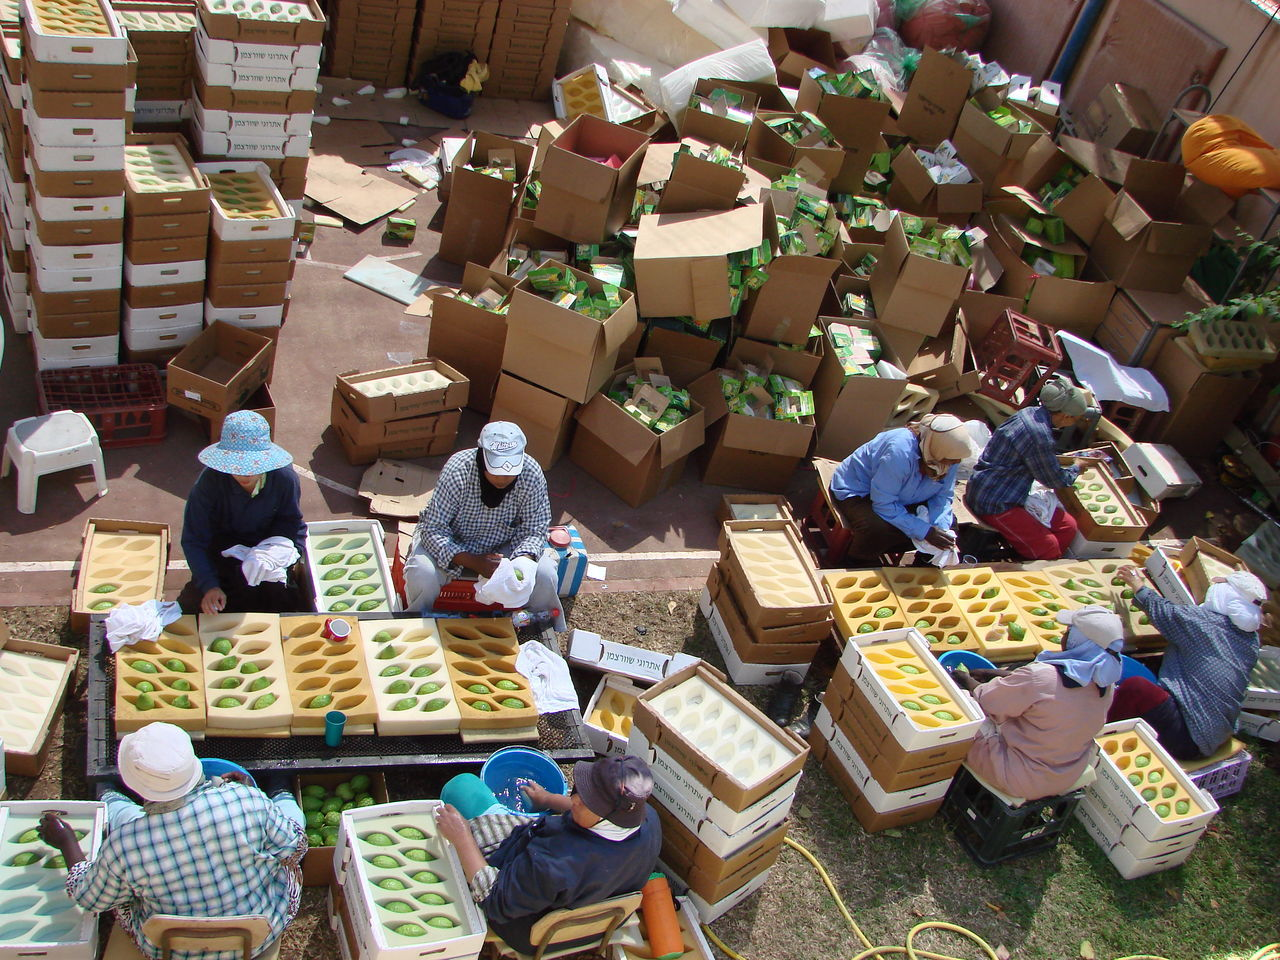 Adult Adults Only Day Food Food And Drink Freshness High Angle View Large Group Of Objects Market Market Stall Men Occupation Outdoors People Real People Stack